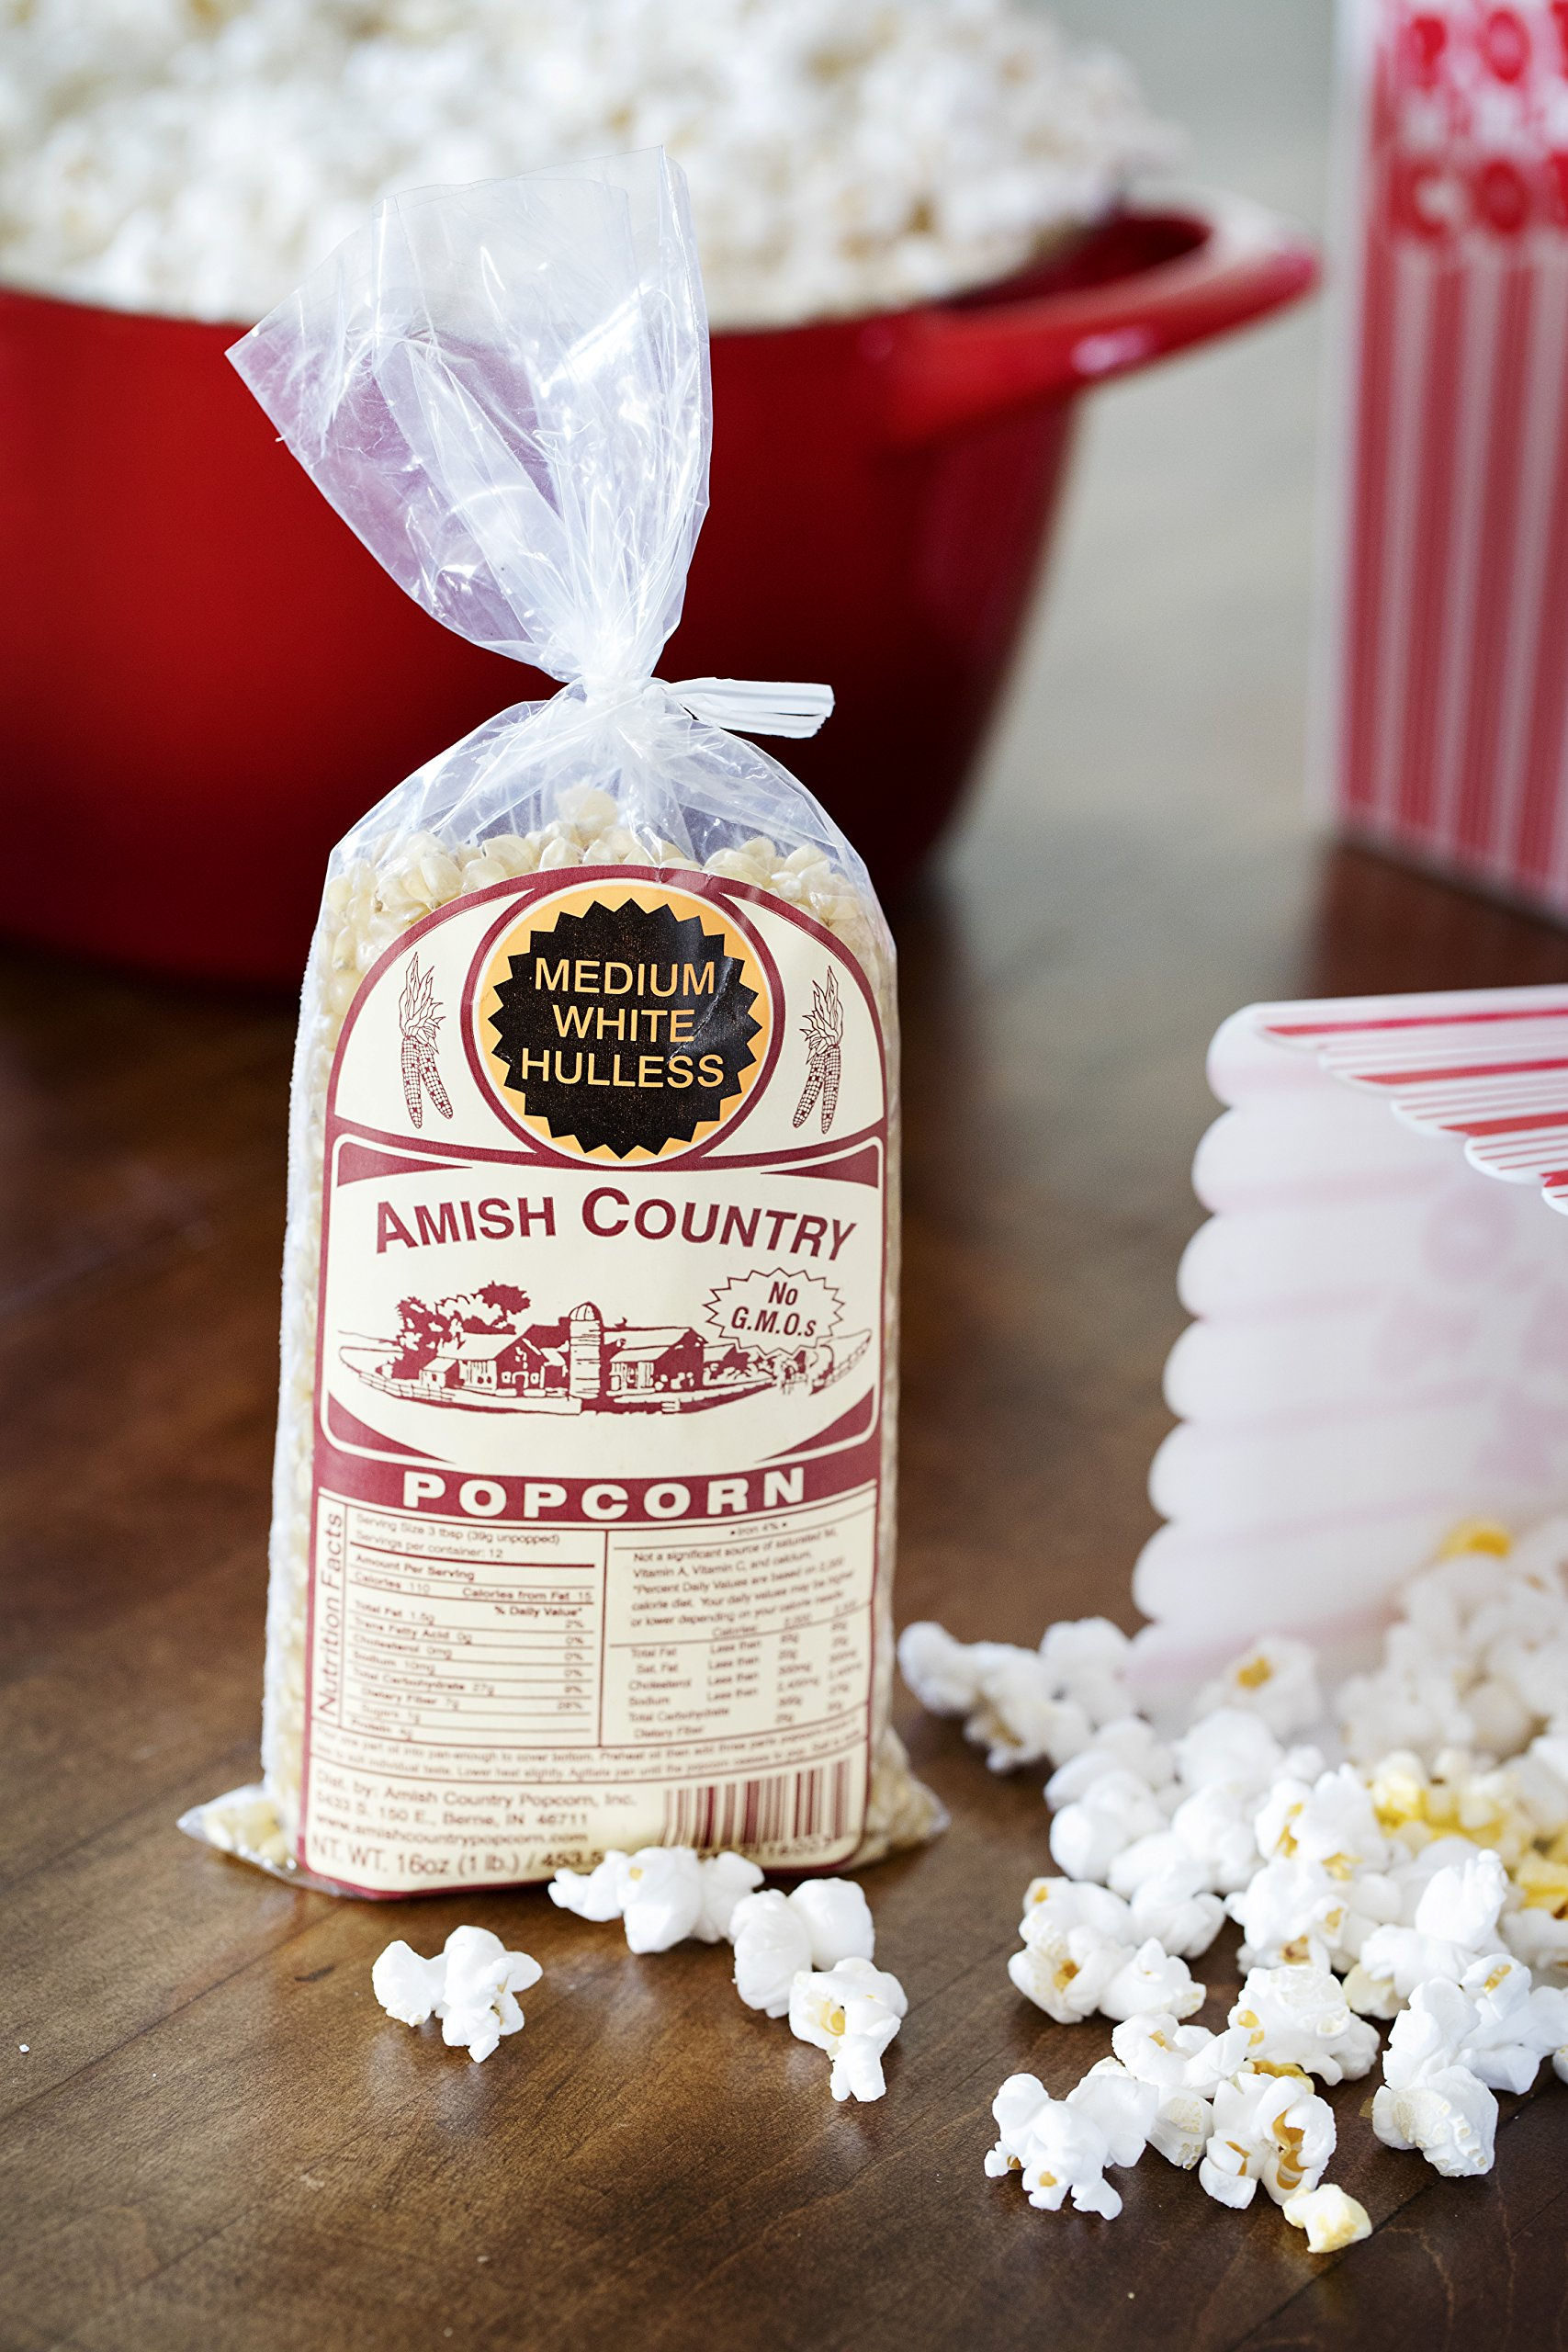 Amish Country Popcorn - Medium White Popcorn (1 Pound Bag) - Old Fashioned, Non GMO, Gluten Free, Microwaveable, Stovetop and Air Popper Friendly - Recipe Guide by Amish Country Popcorn (Image #3)